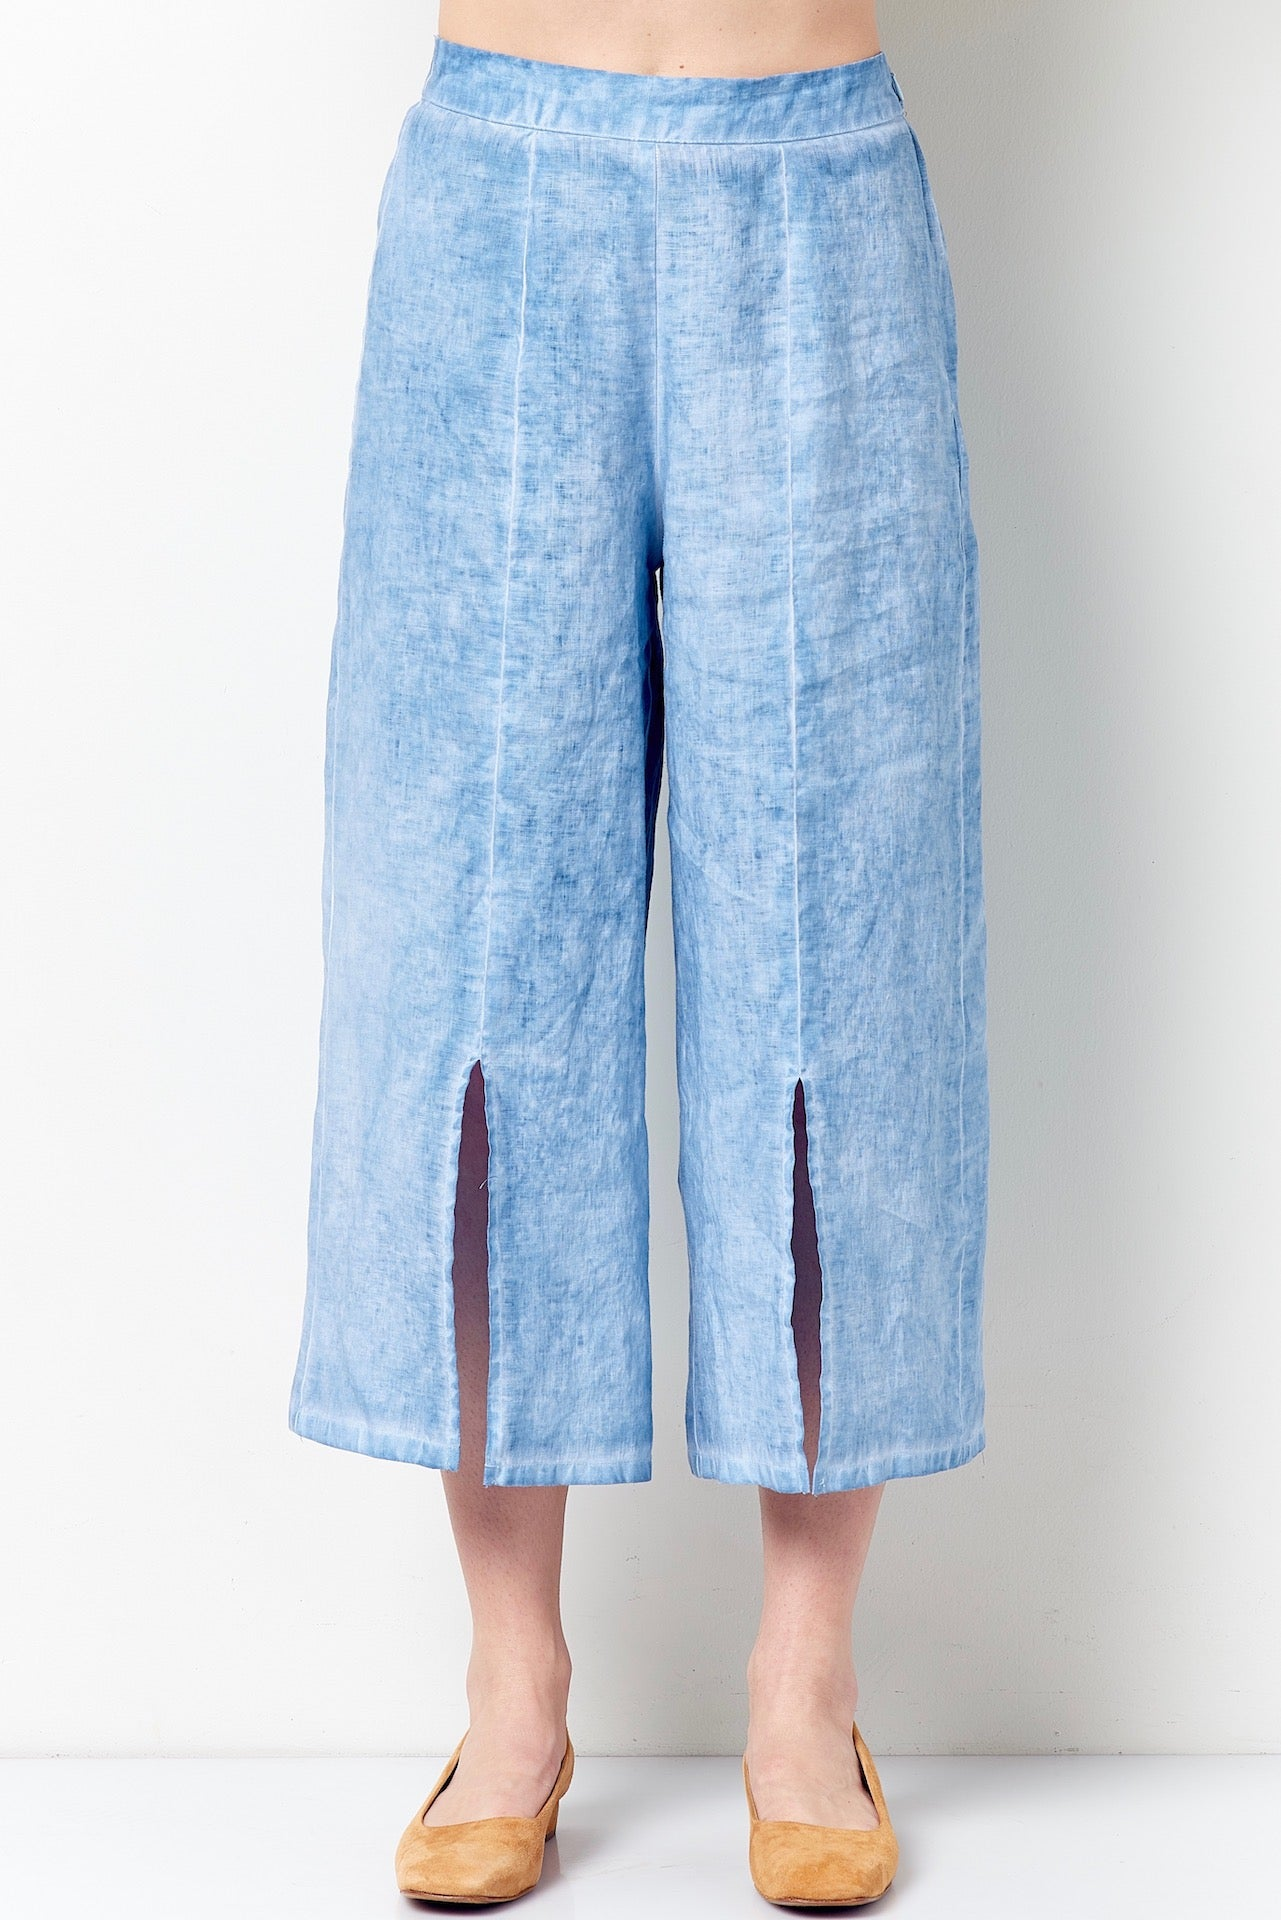 TALEEN Split Leg Cropped Pant- Oil Wash